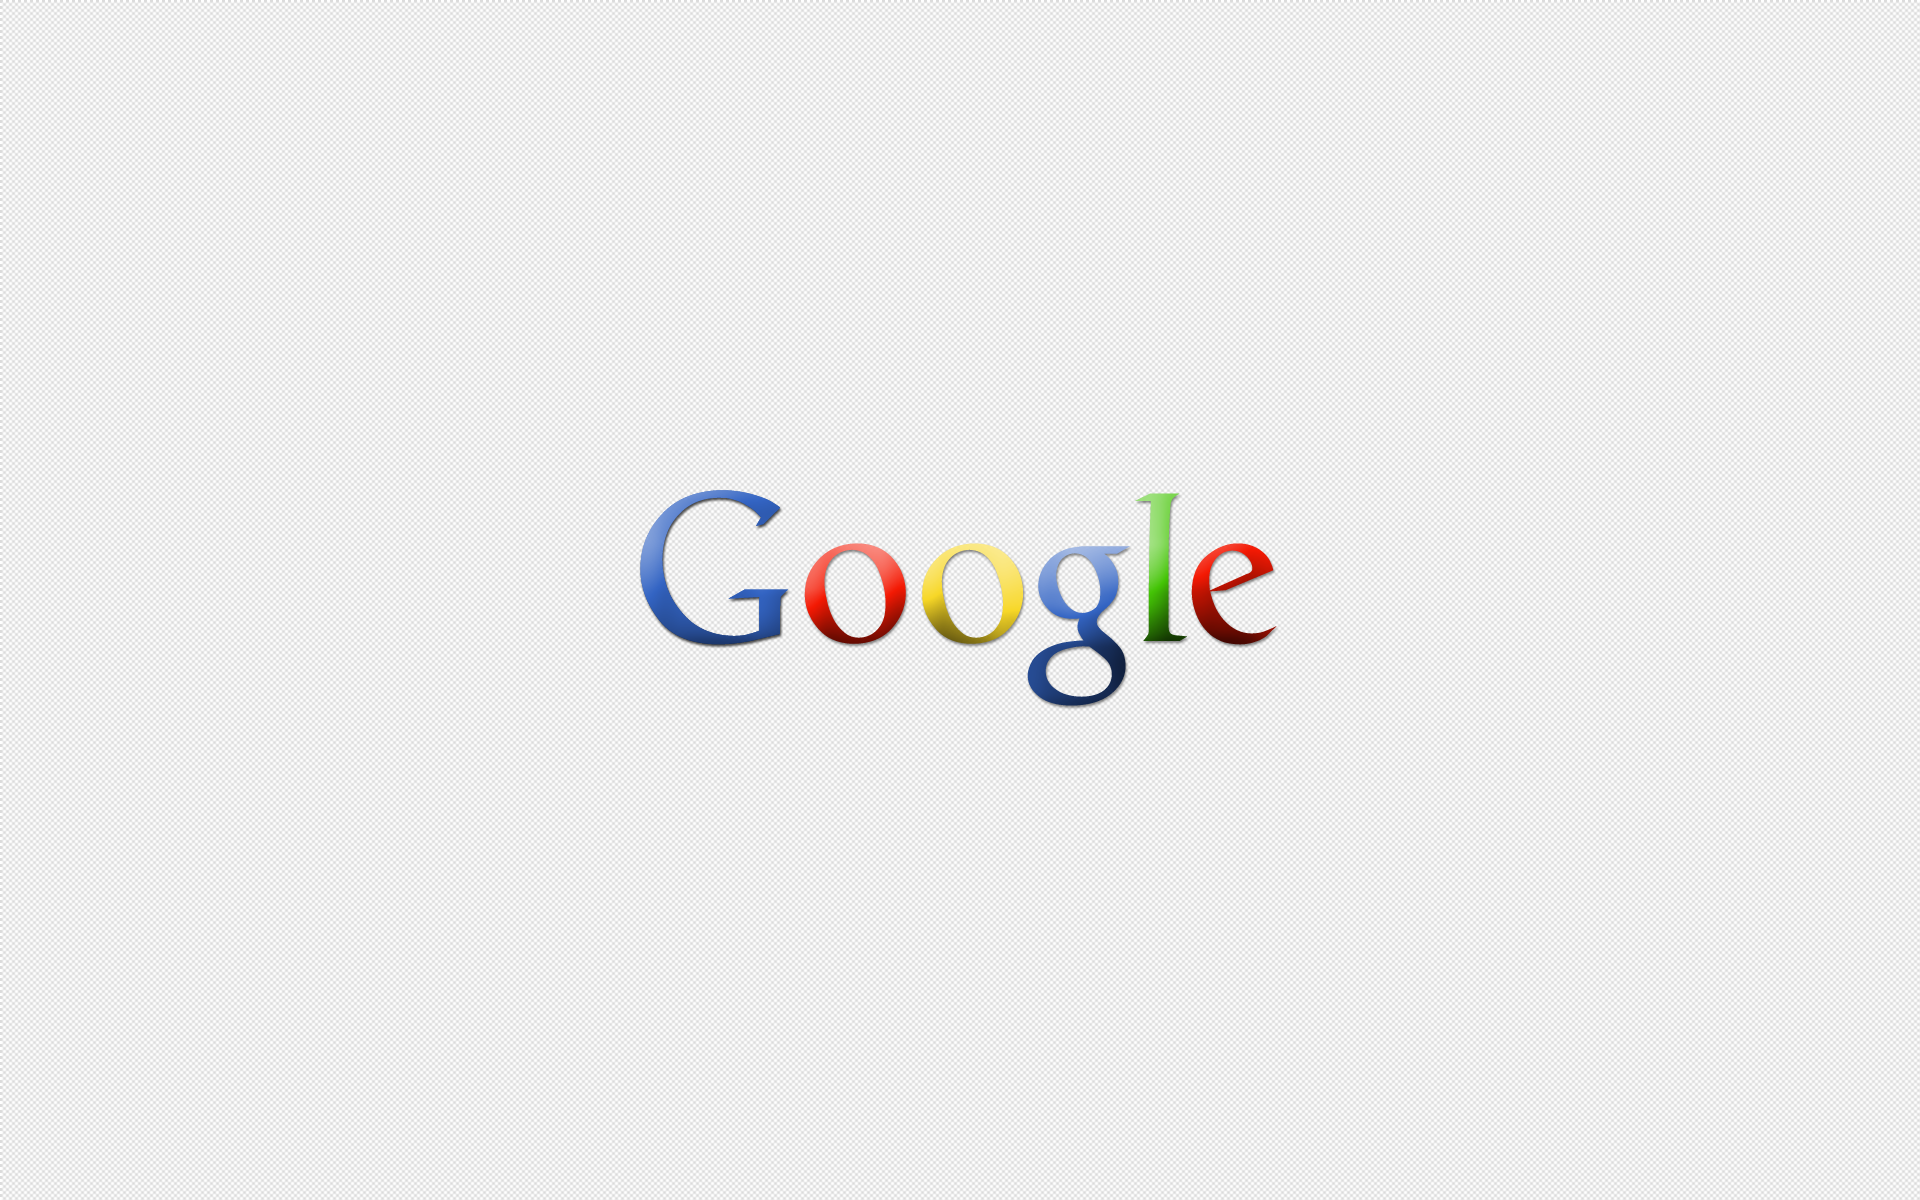 Google_Wallpaper_by_Rahul964 (1)